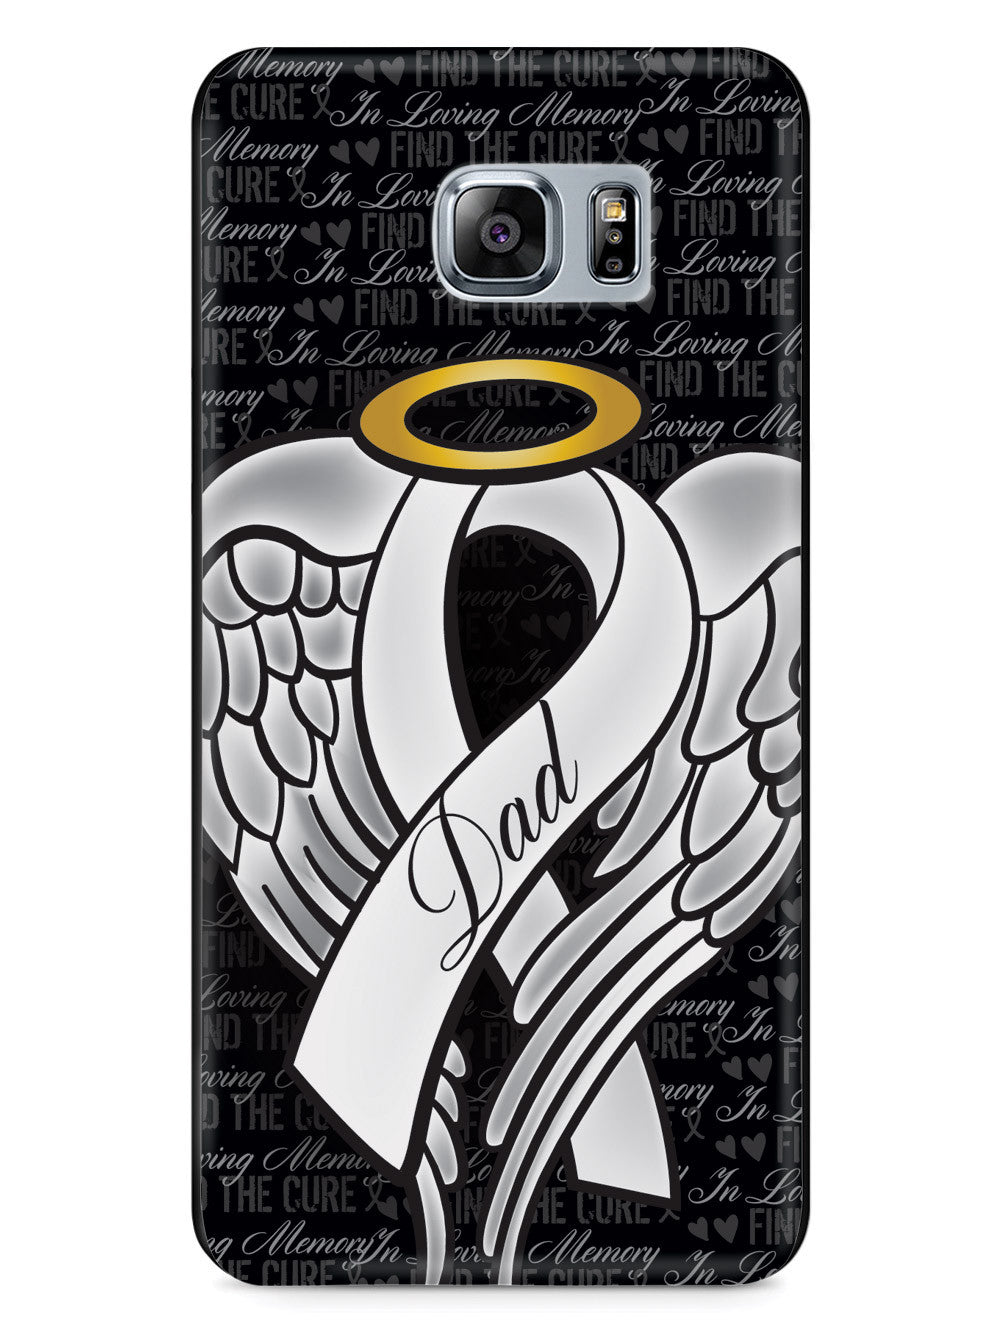 In Loving Memory of My Dad - White Ribbon Case